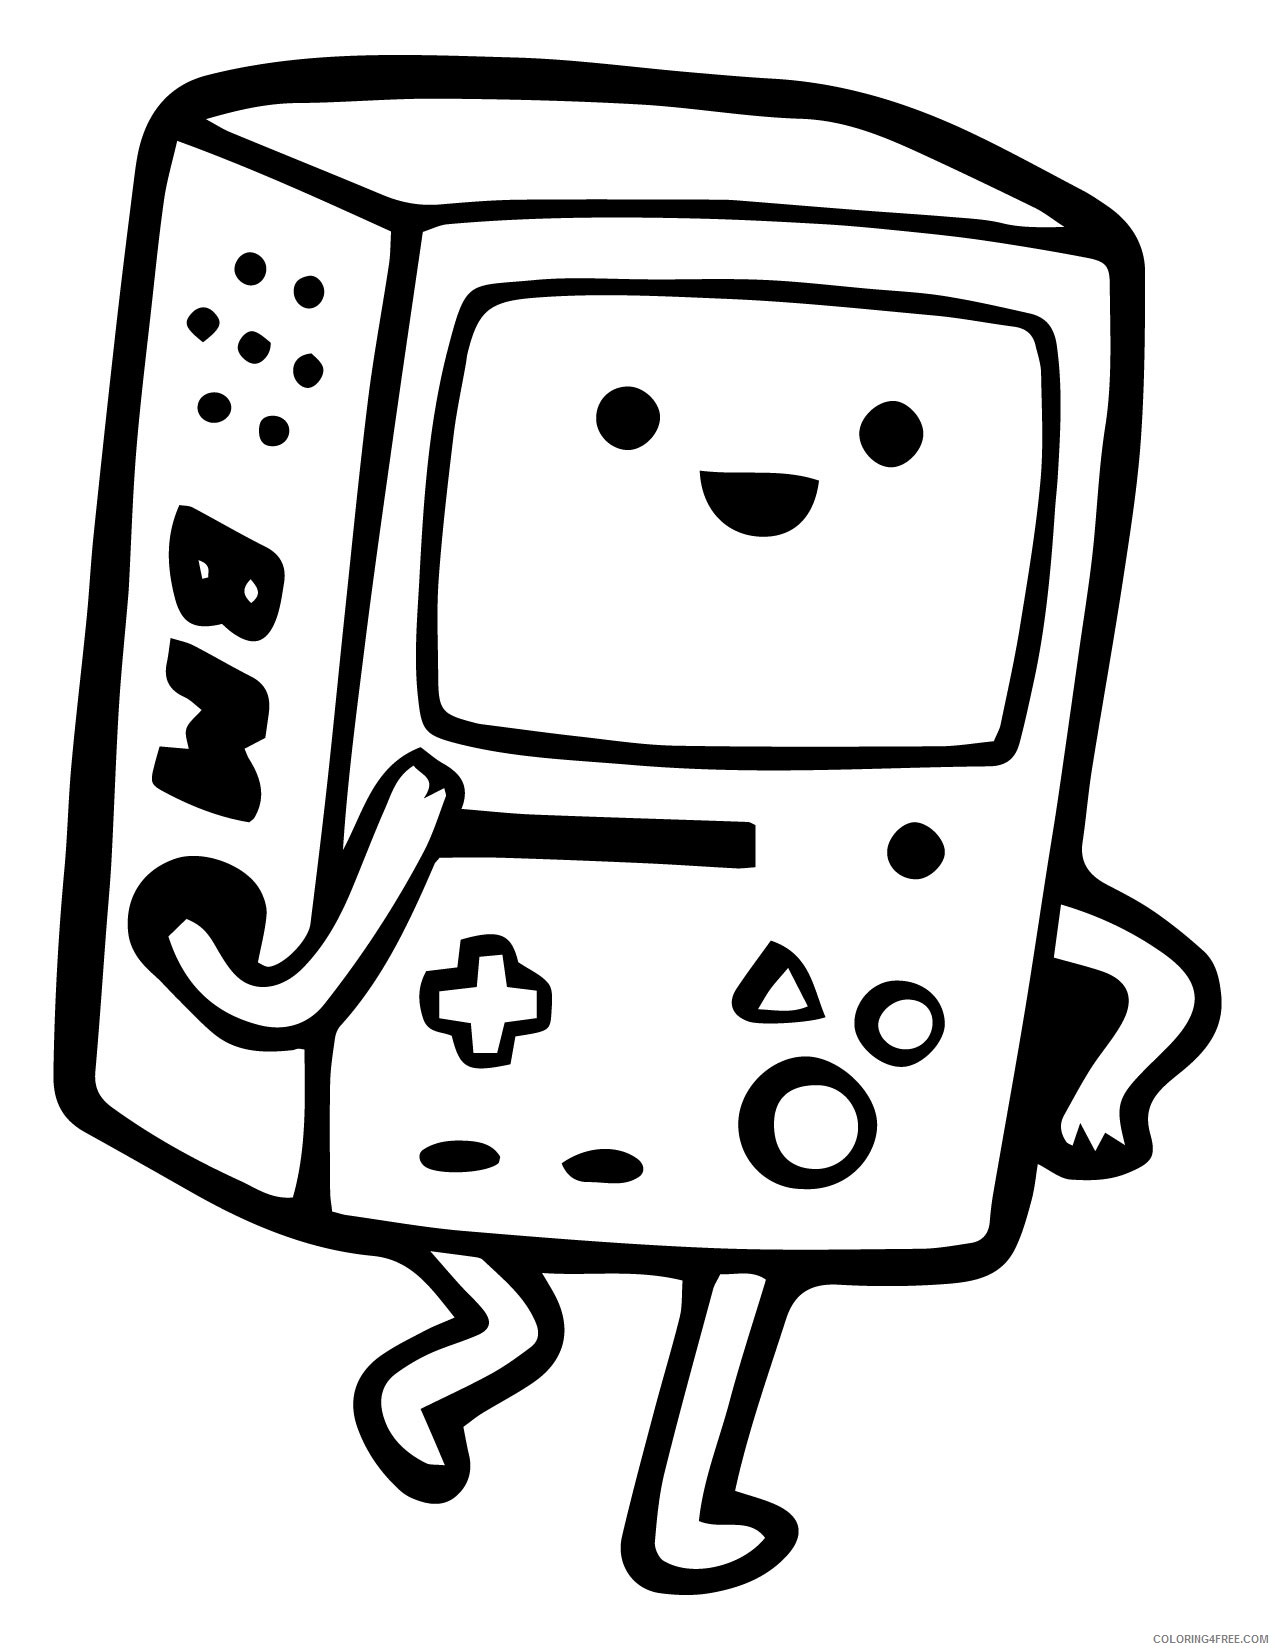 Adventure Time Printable Coloring Pages - Coloring Home | 1650x1275